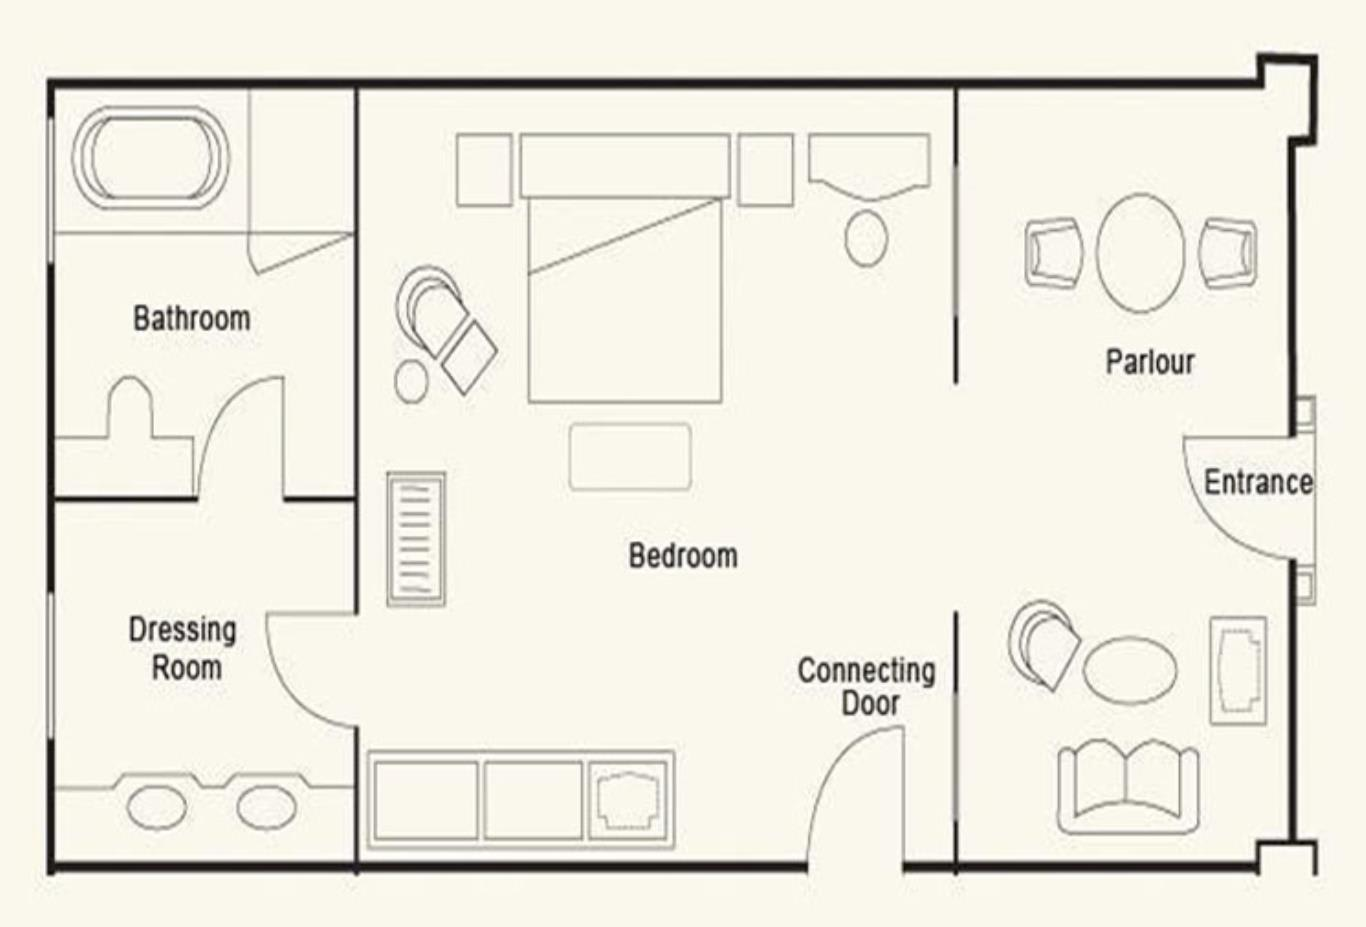 Floorplan of Personality Suite